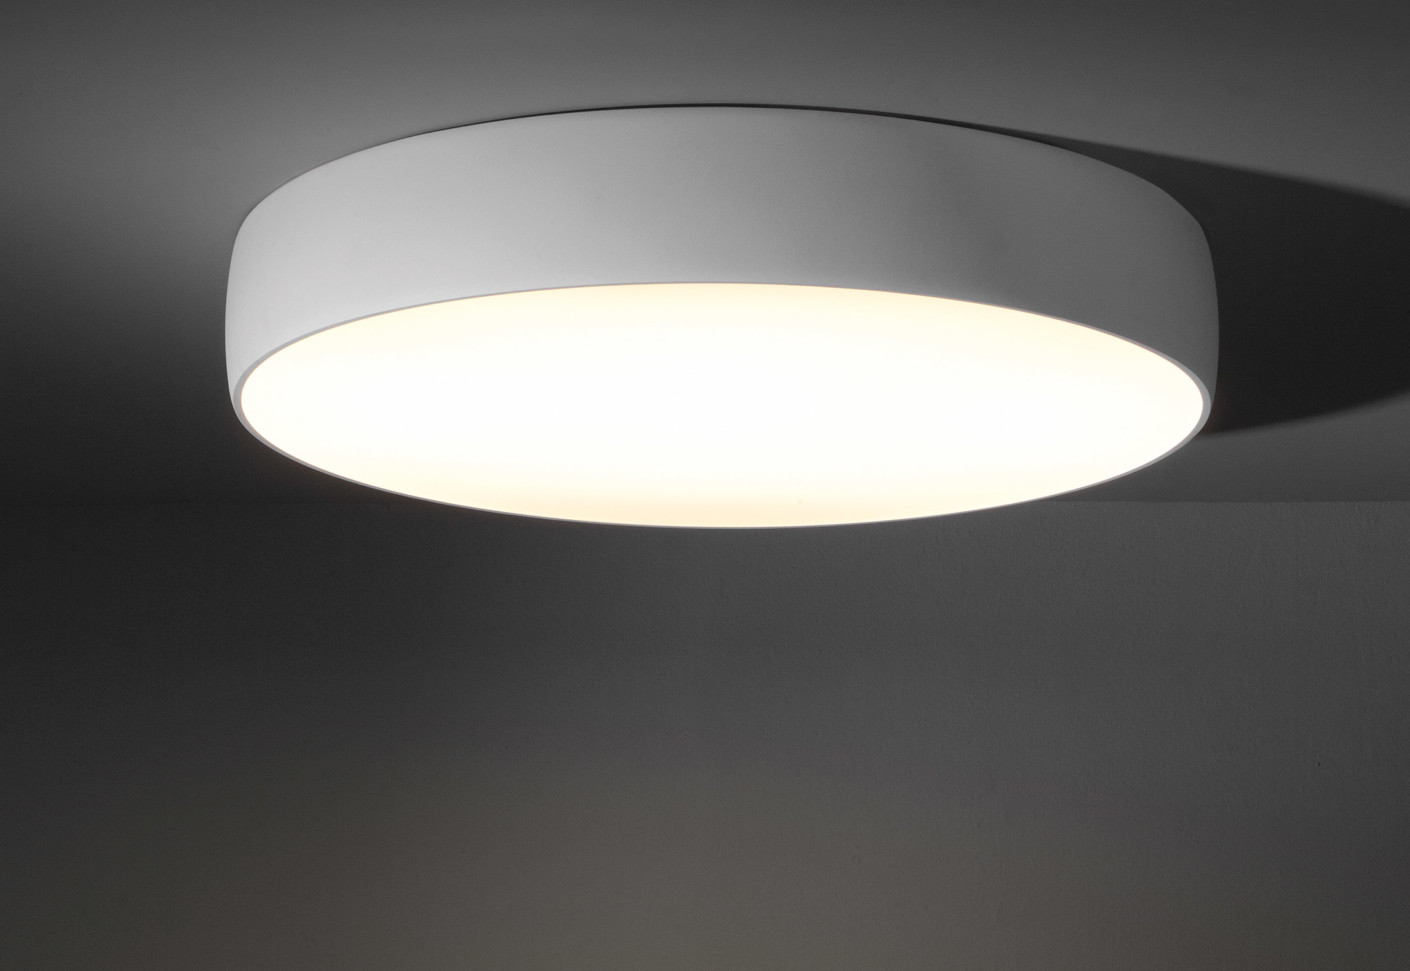 Flat moon ceiling lamp by modular lighting instruments stylepark aloadofball